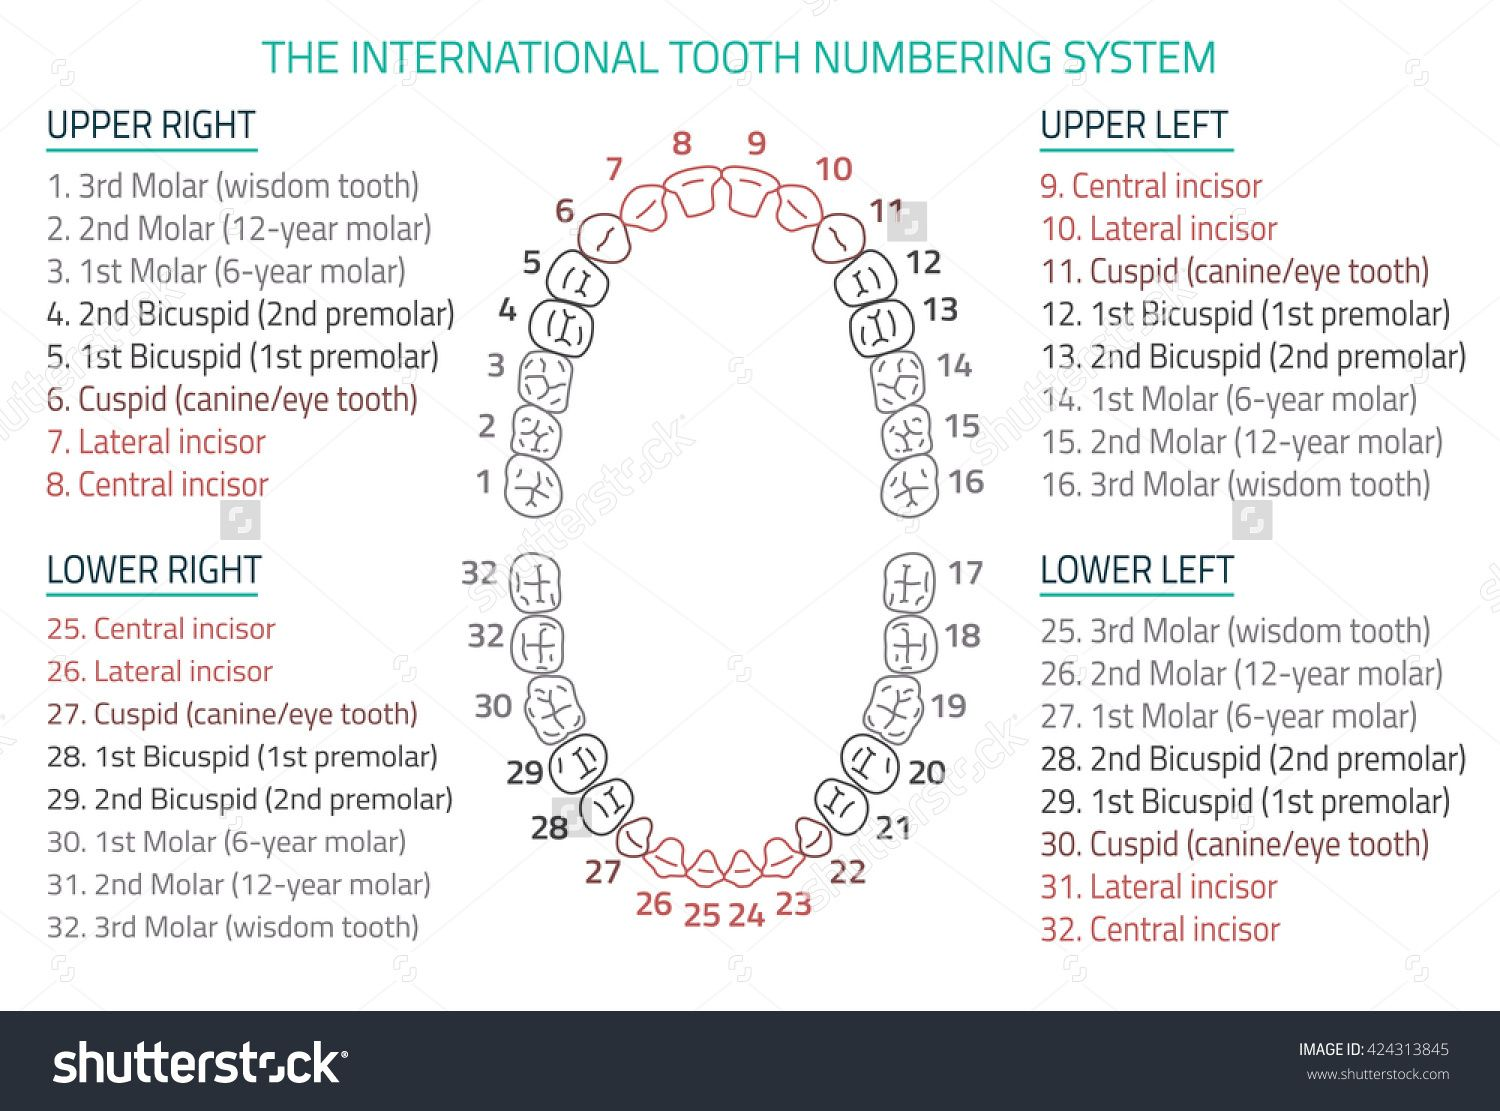 Adult International Tooth Numbering Chart Vector Illustration Editable Image In Modern Style